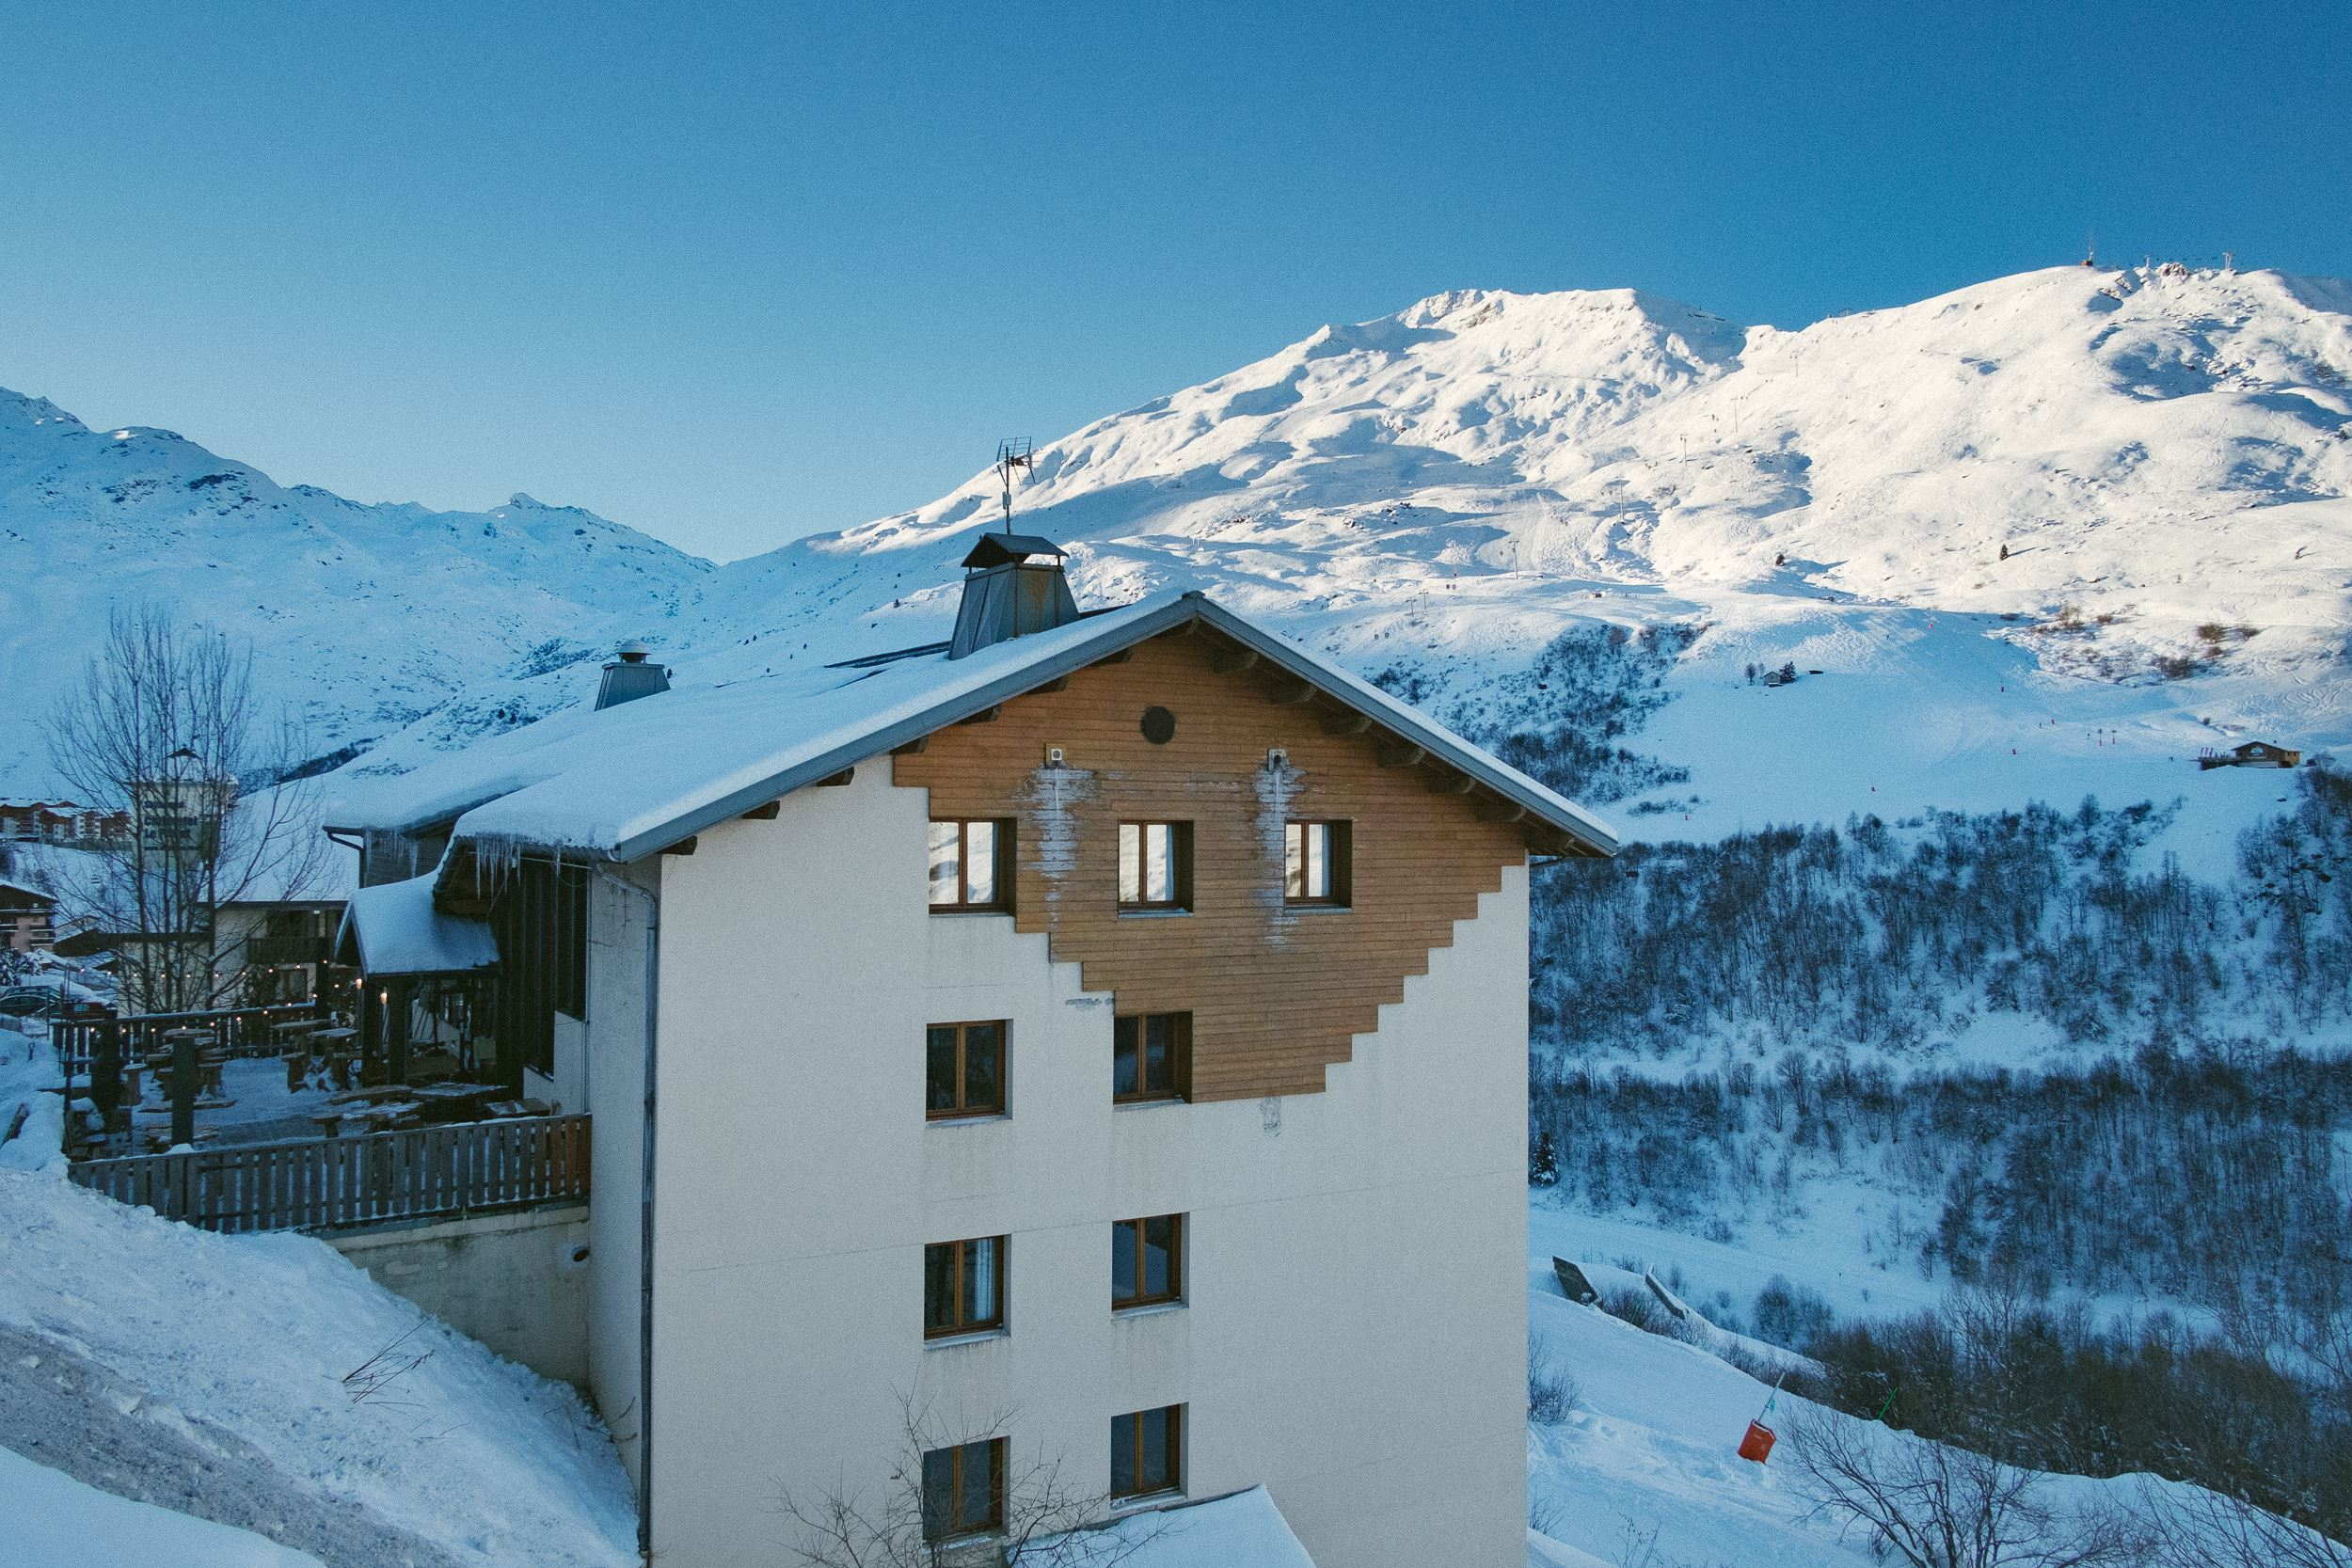 Ski-in ski-out hotel / HO36 LES MENUIRES